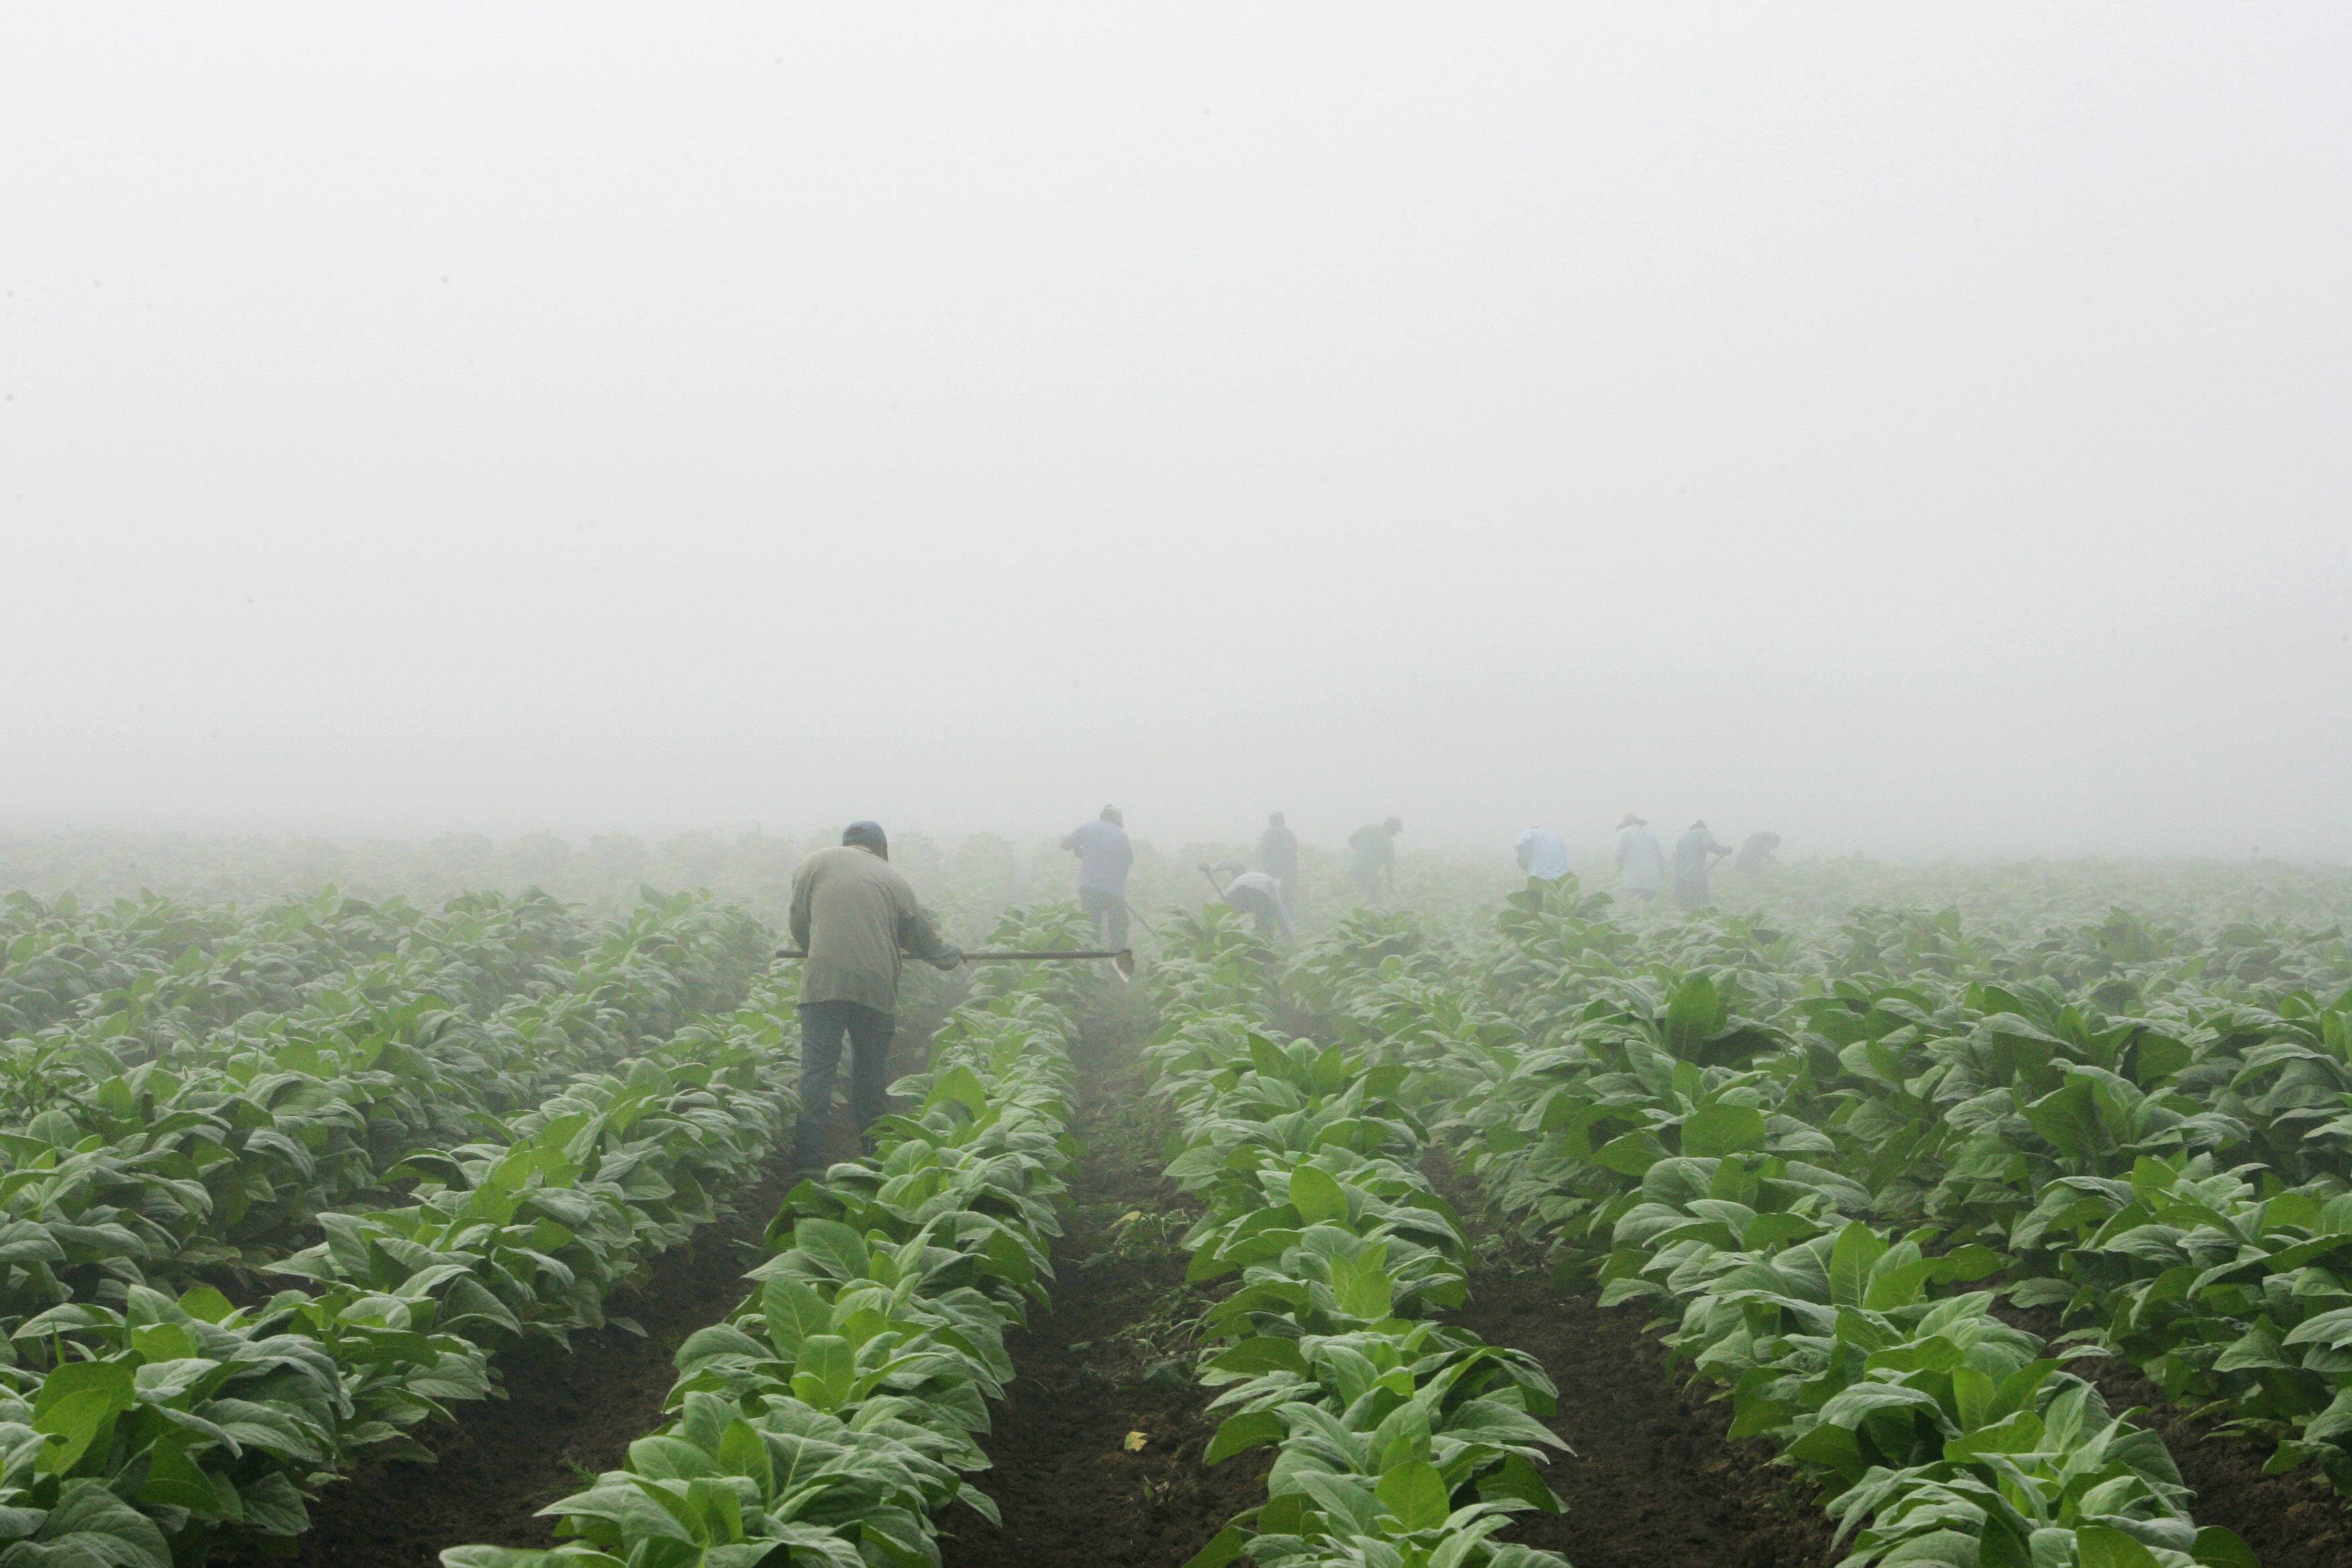 Farm workers make their way across a field shrouded in fog as they hoe weeds from a burley tobacco crop near Warsaw, Ky. You may have to be at least 18 to buy cigarettes in the U.S., but children as young as 7 are working long hours in fields harvesting nicotine- and pesticide-laced tobacco leaves under sometimes hazardous and sweltering conditions.